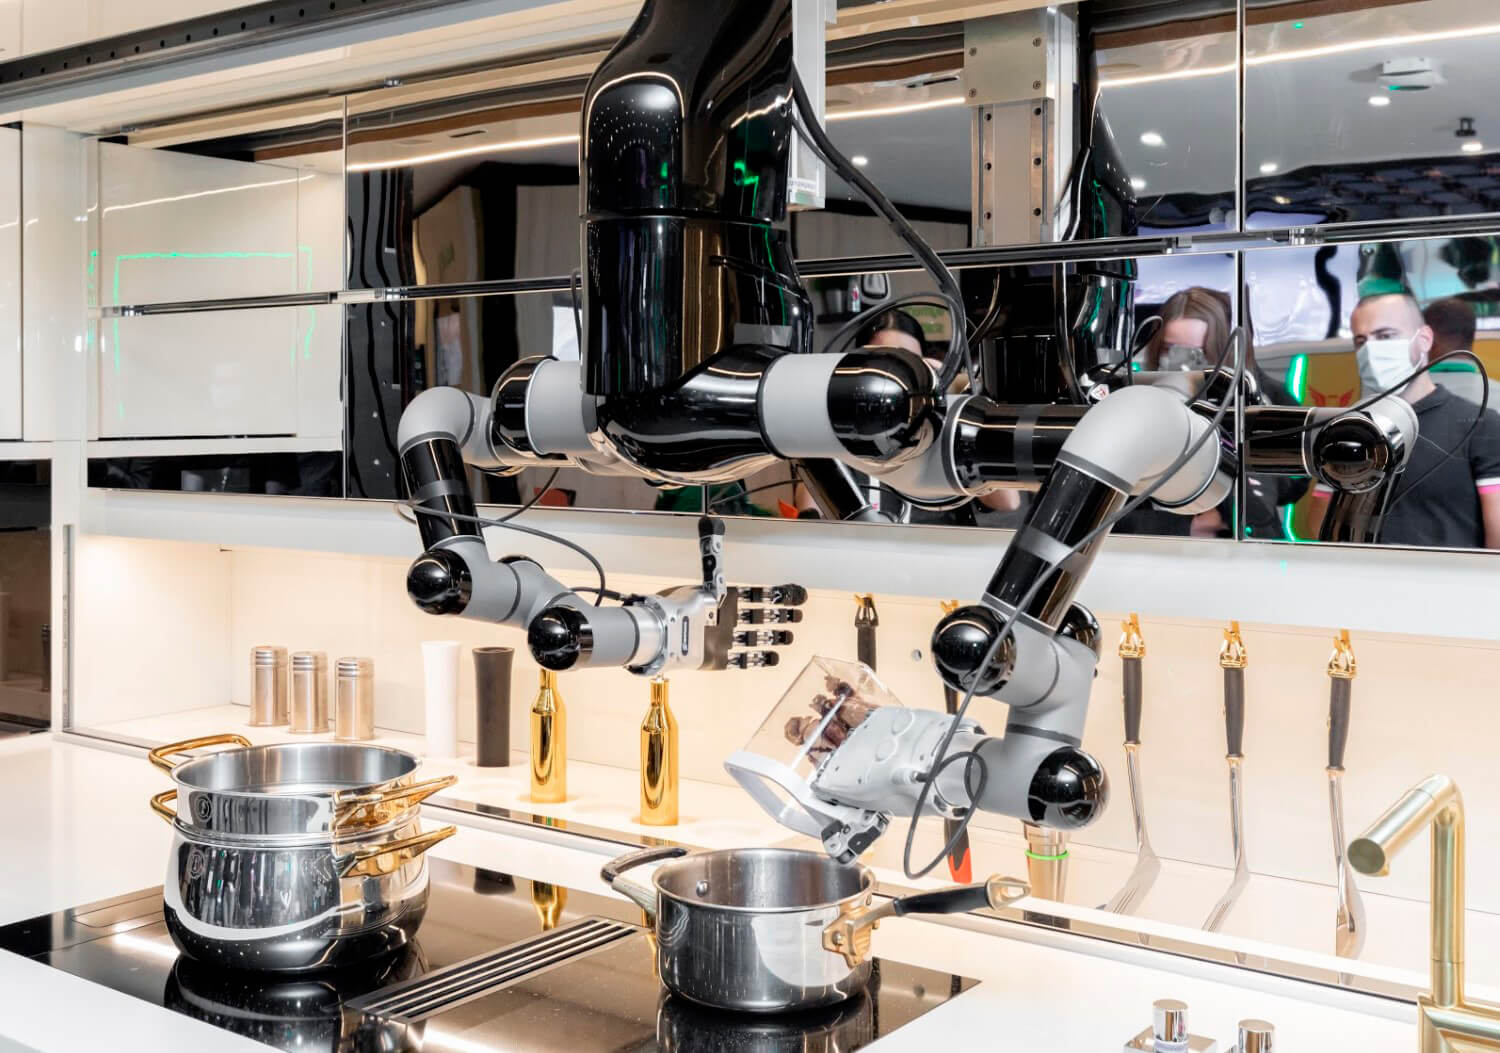 Watch: The Moley Robotic Kitchen Can Do Almost Everything, Even Clean Itself!